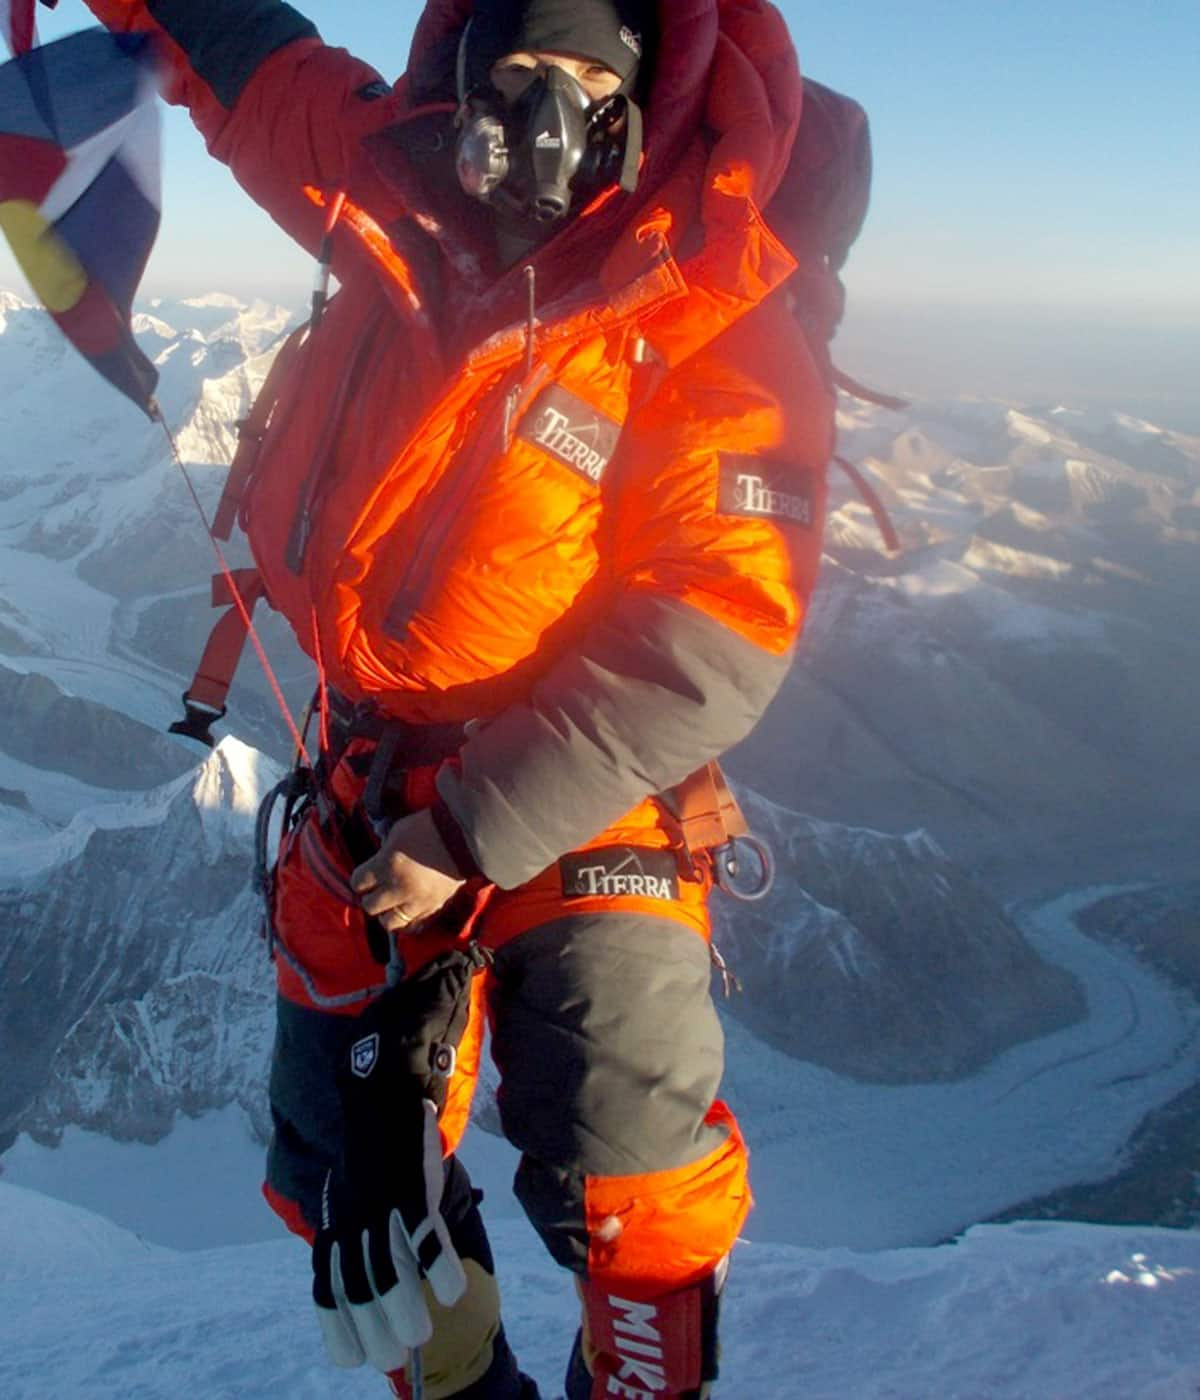 The riskiest rescue: 10 years after the deadliest day in K2 history